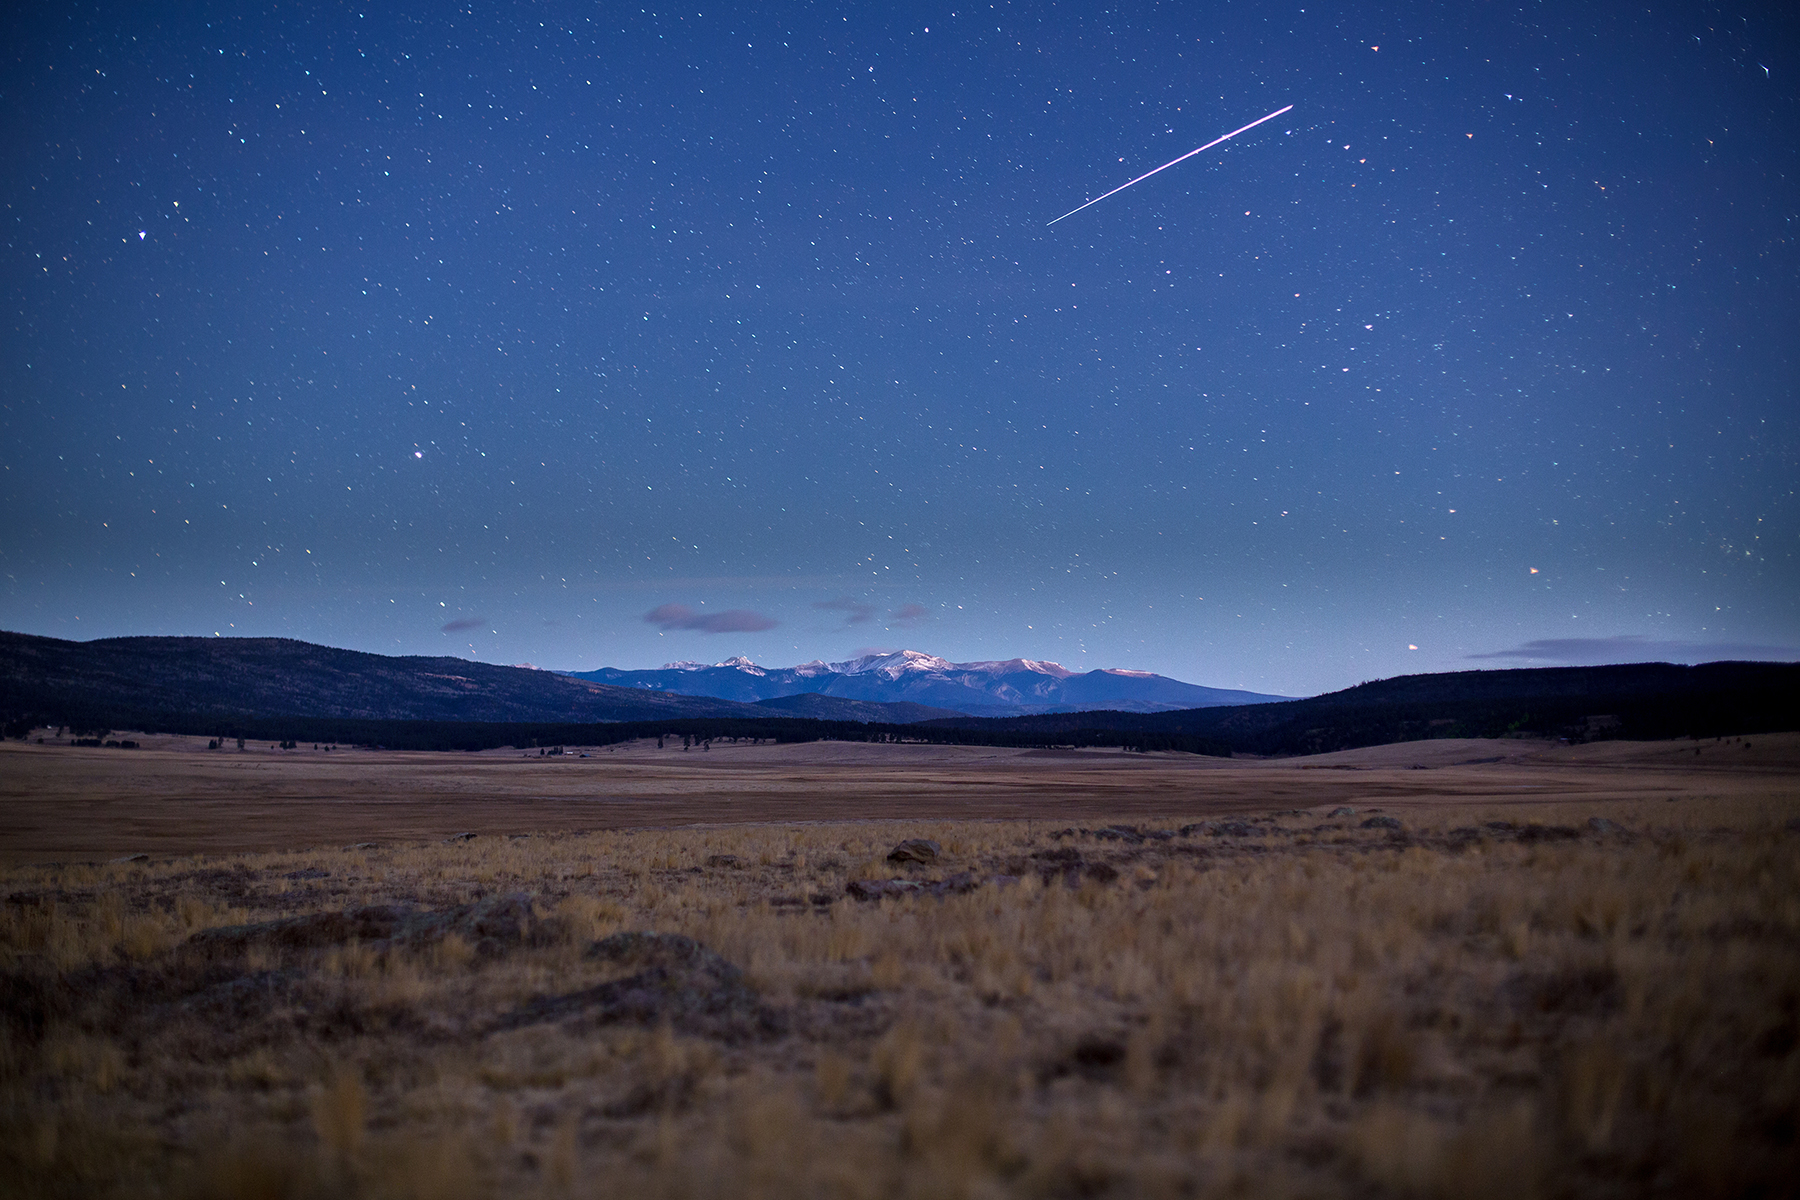 Shooting star over the Moreno Valley in New Mexico under moon light